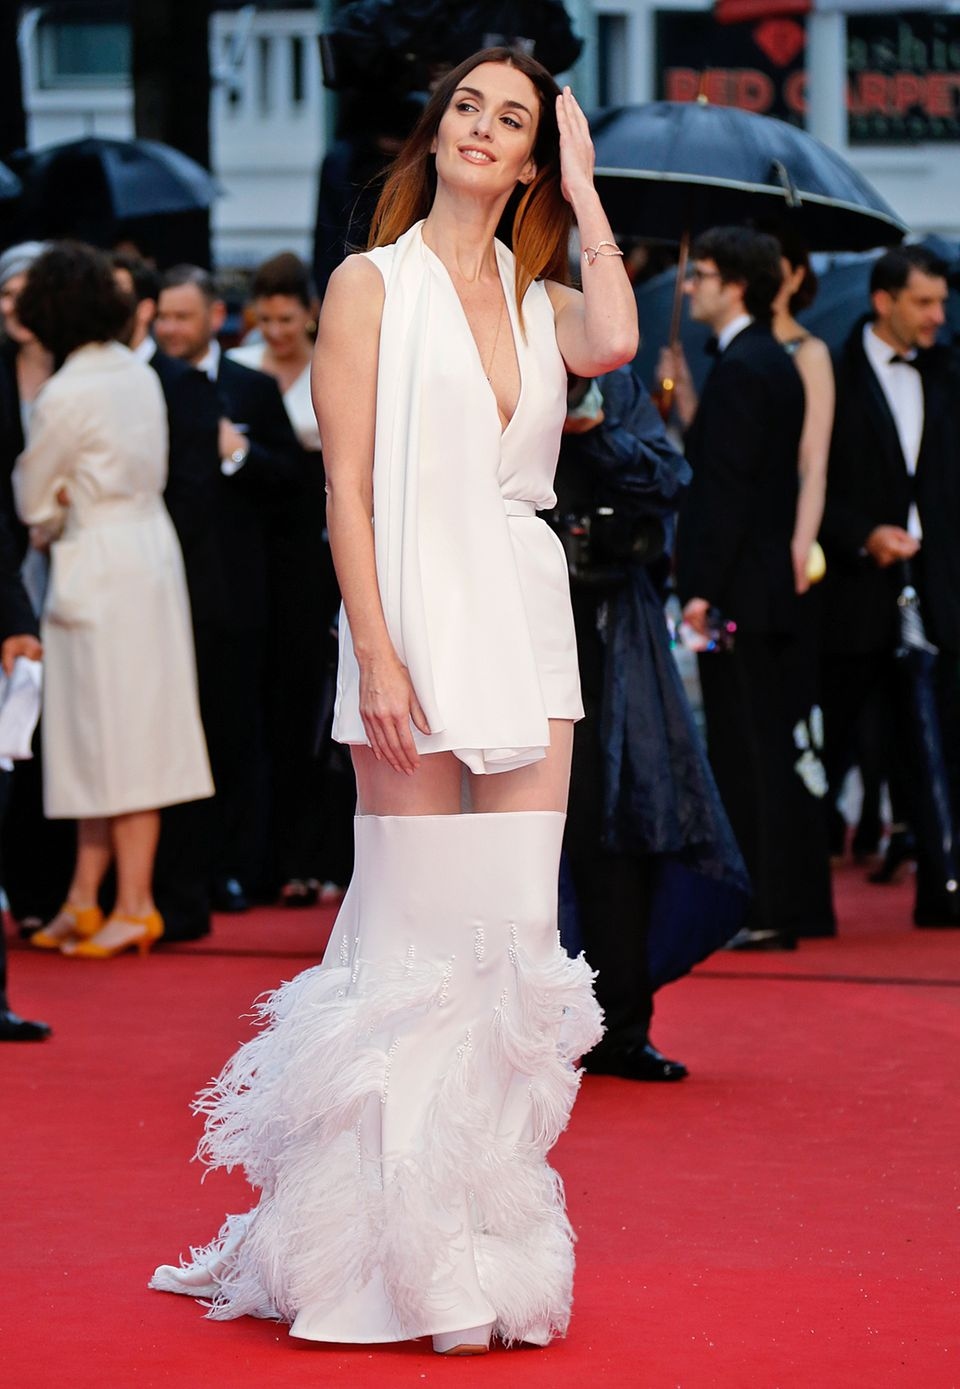 Paz Vega in Stéphane Rolland Couture